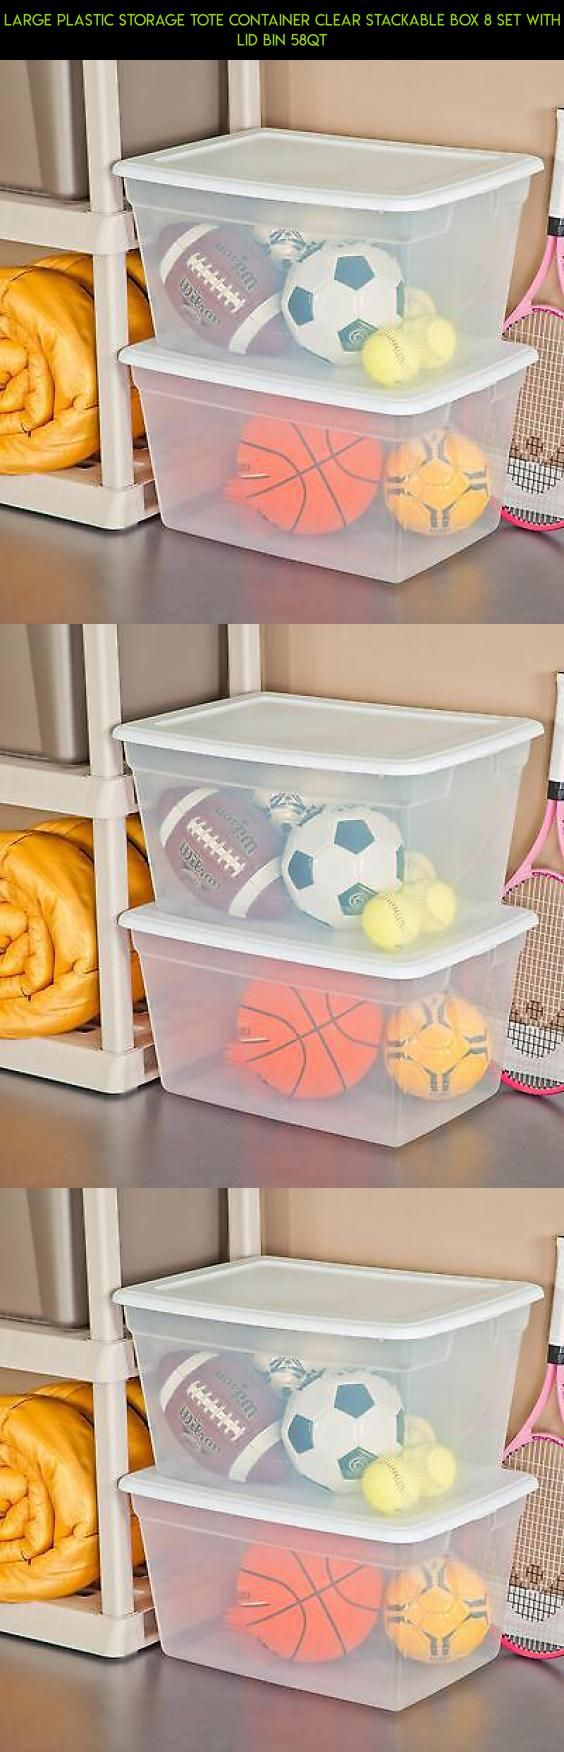 Large Plastic Storage Tote Container Clear Stackable Box 8 Set with Lid Bin 58QT #gadgets #fpv #bin #plans #camera #shopping #technology #racing #parts #tech #storage #8 #kit #drone #products